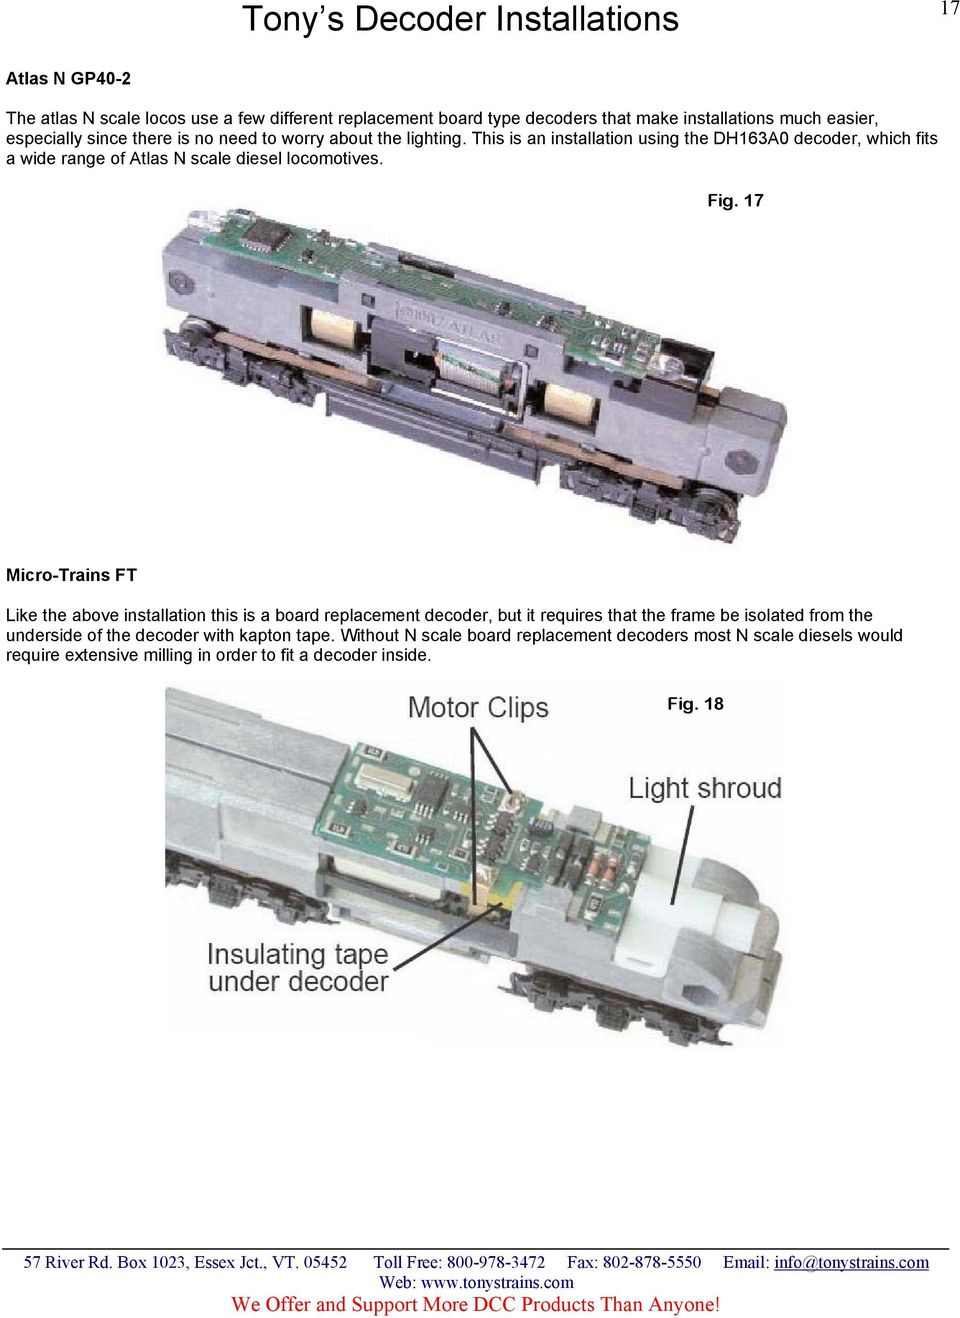 Proto 2000 Gp38 2 Wiring Diagram. . Wiring Diagram on